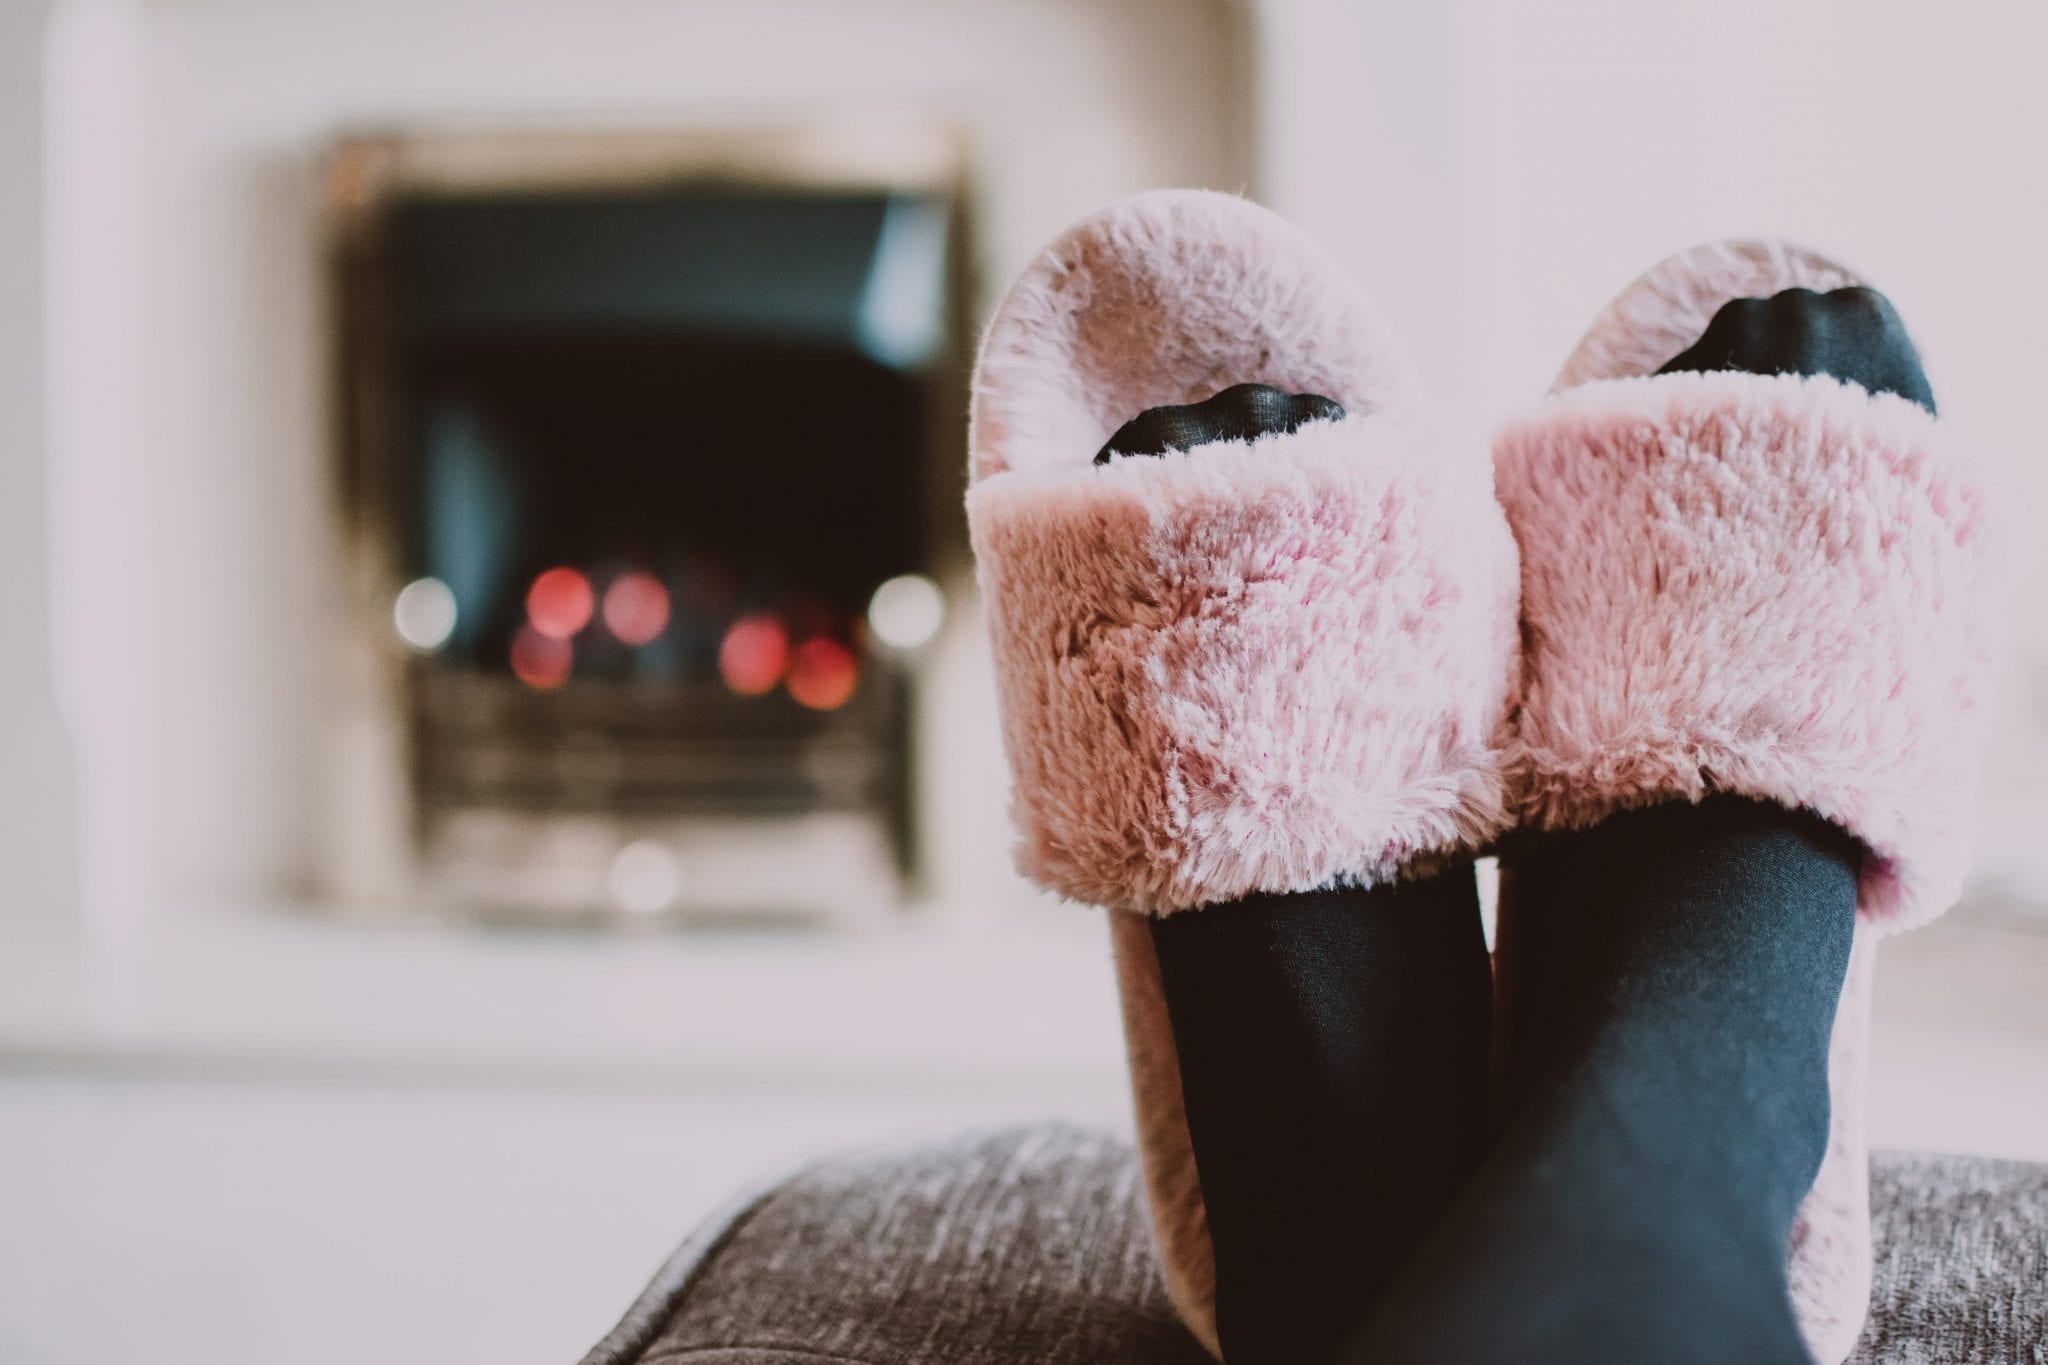 Wearing slippers leads to better health – Here's how!